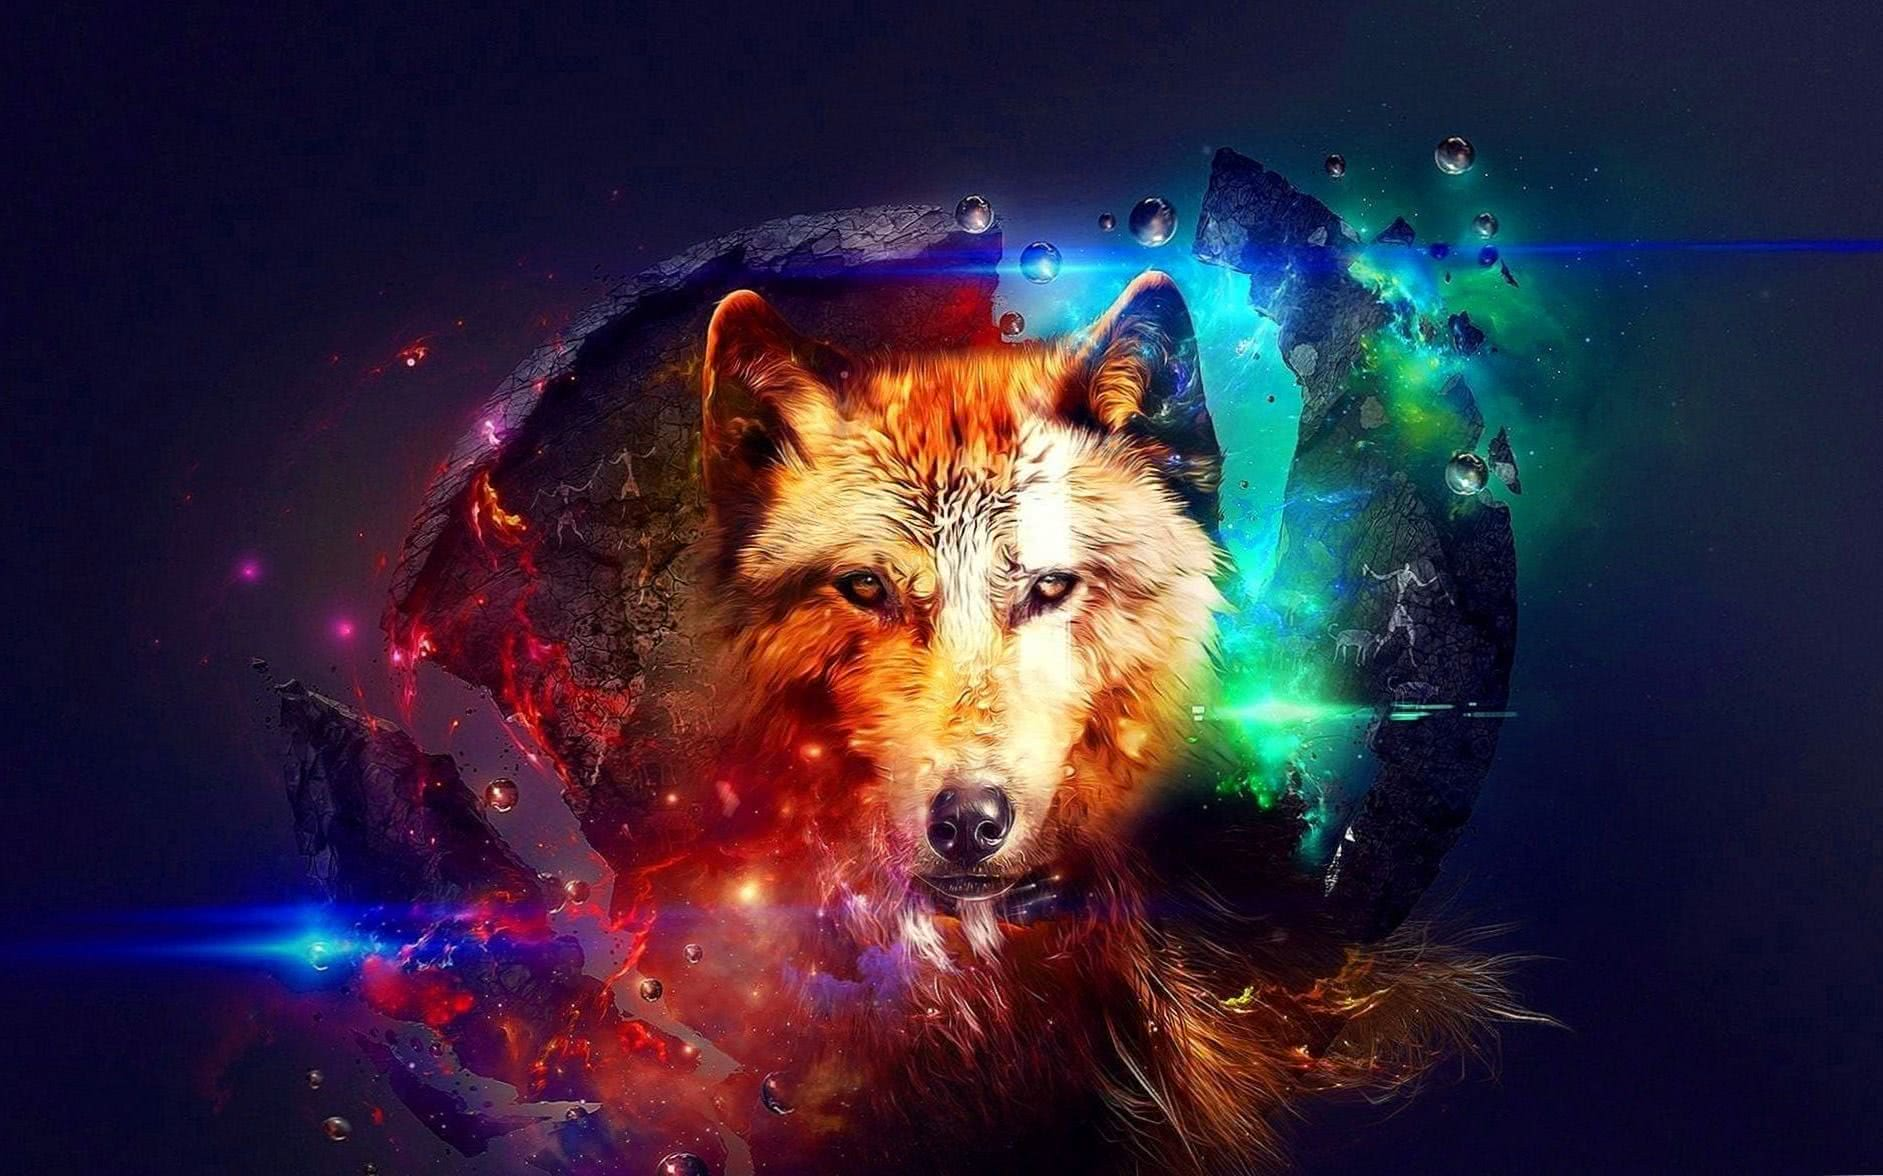 Wolves Fantasy Wallpapers